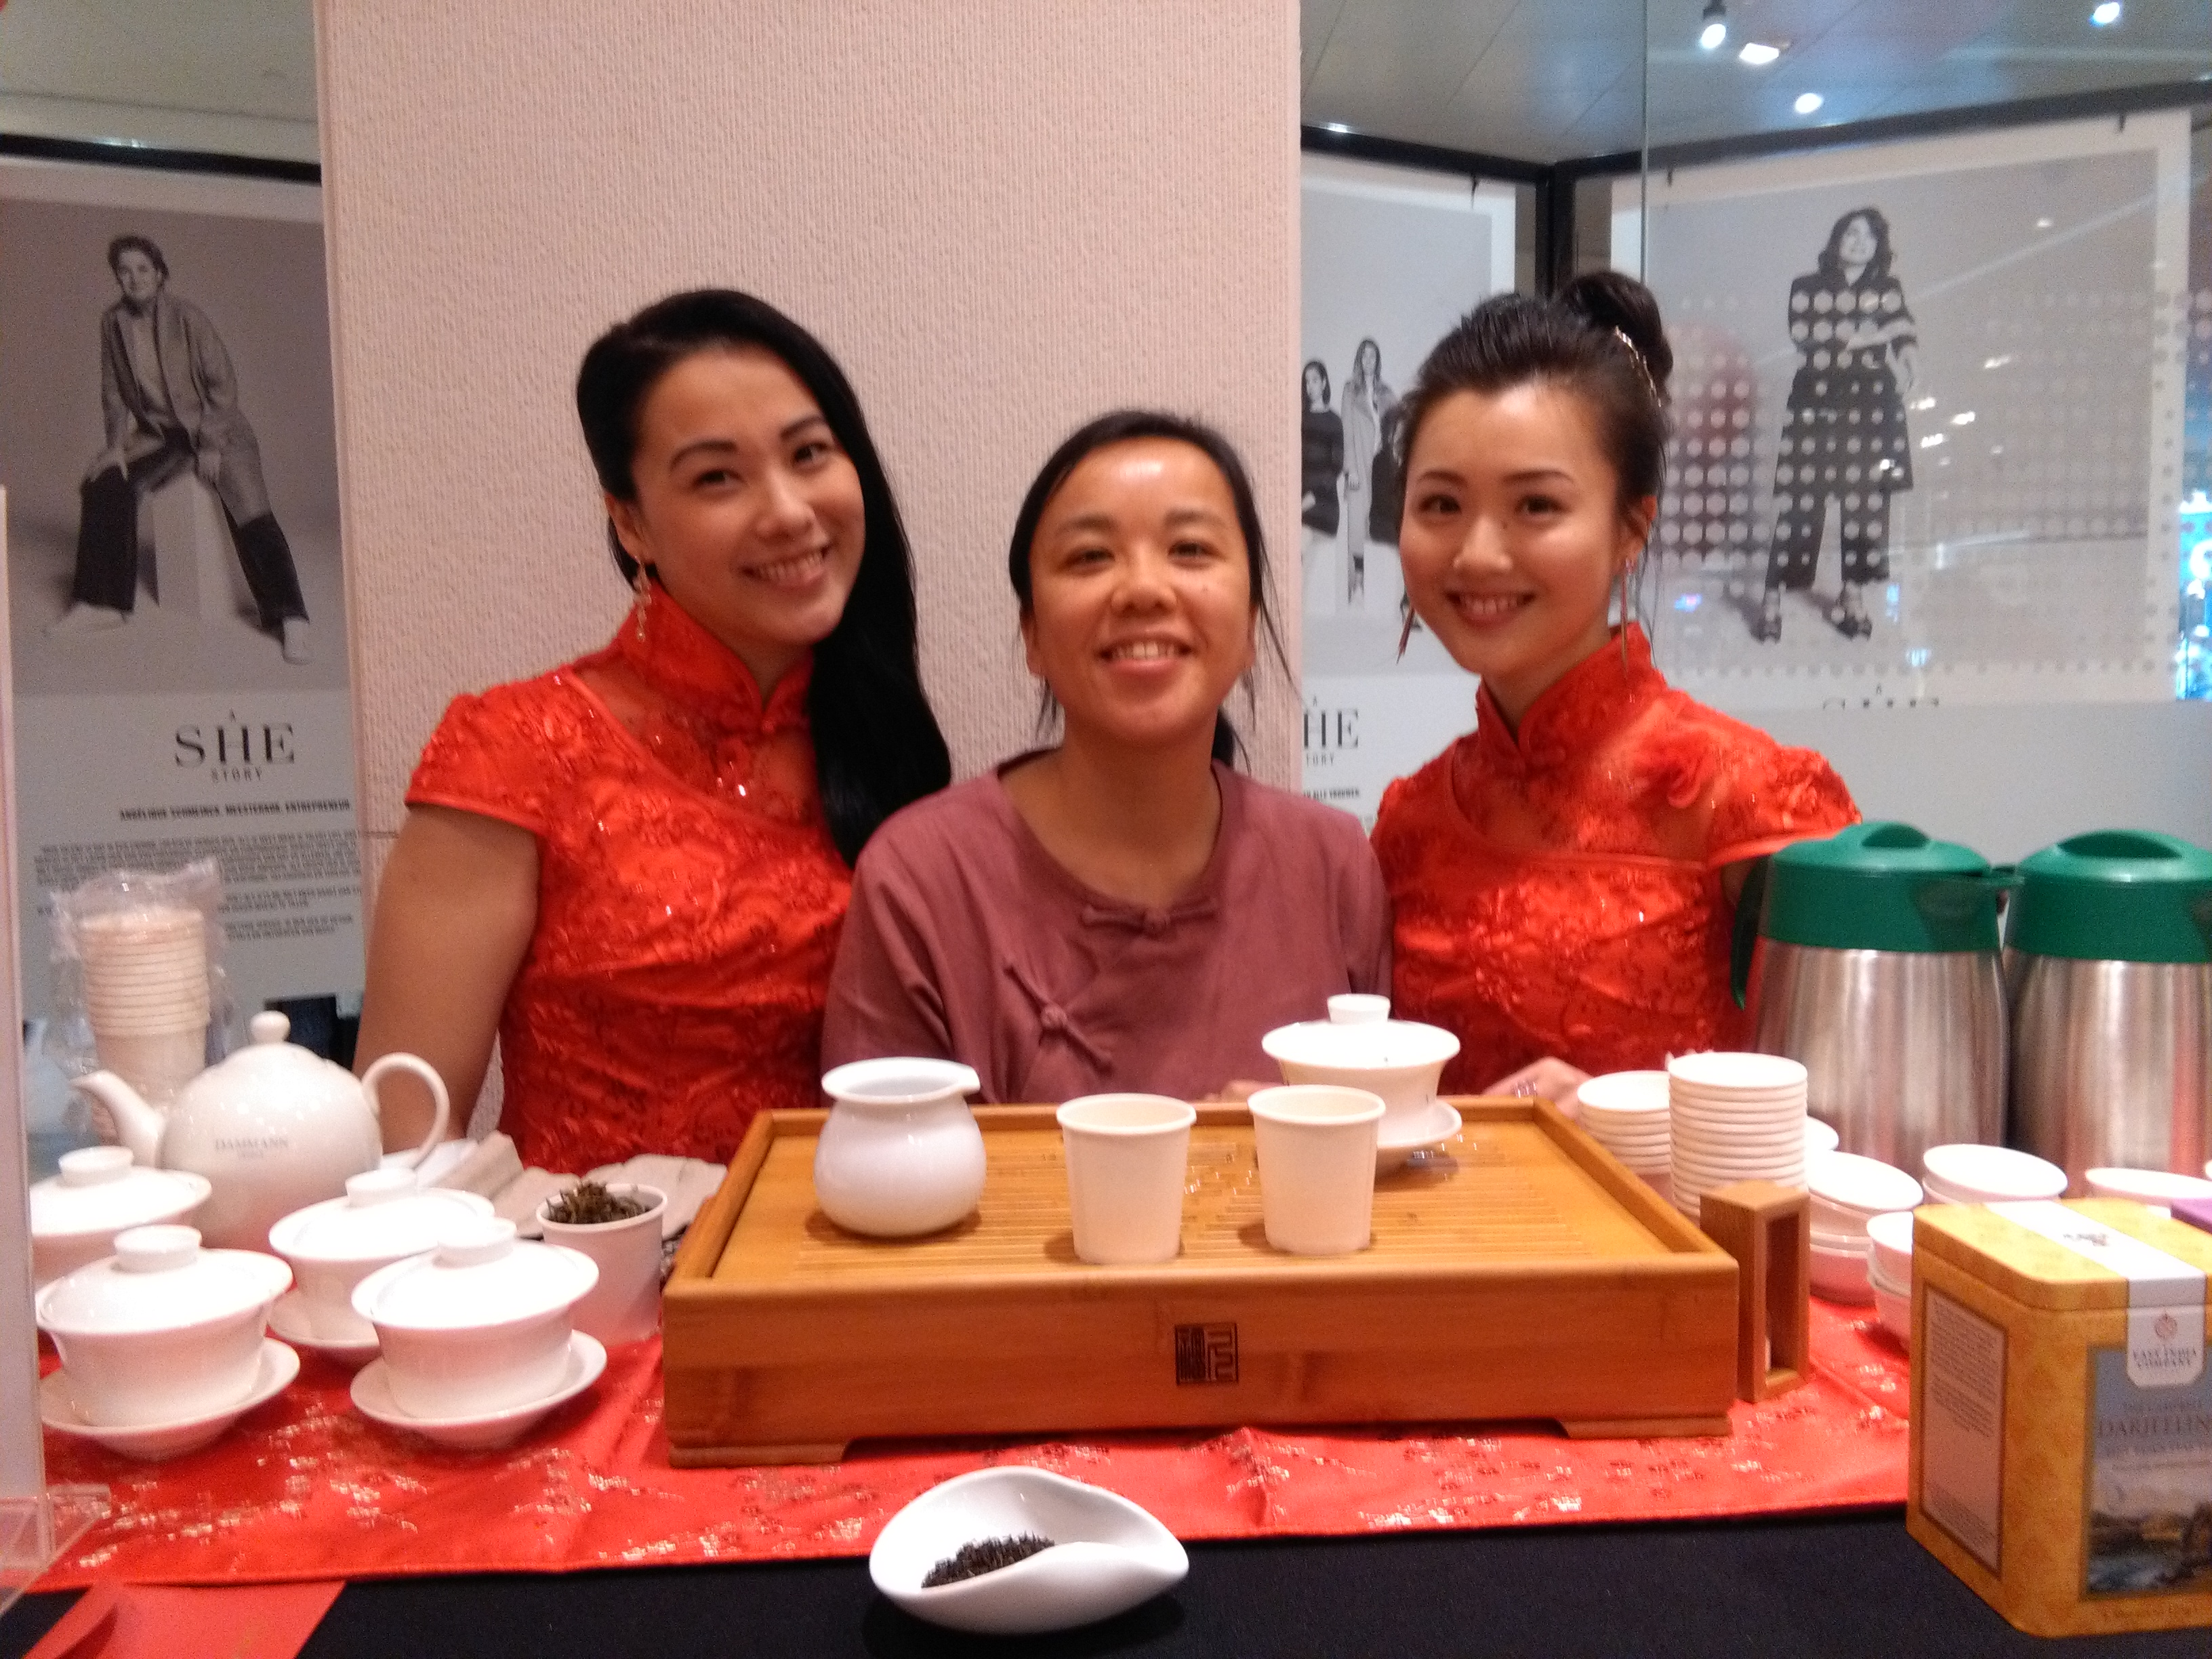 Tea ceremony @deBijenkorf